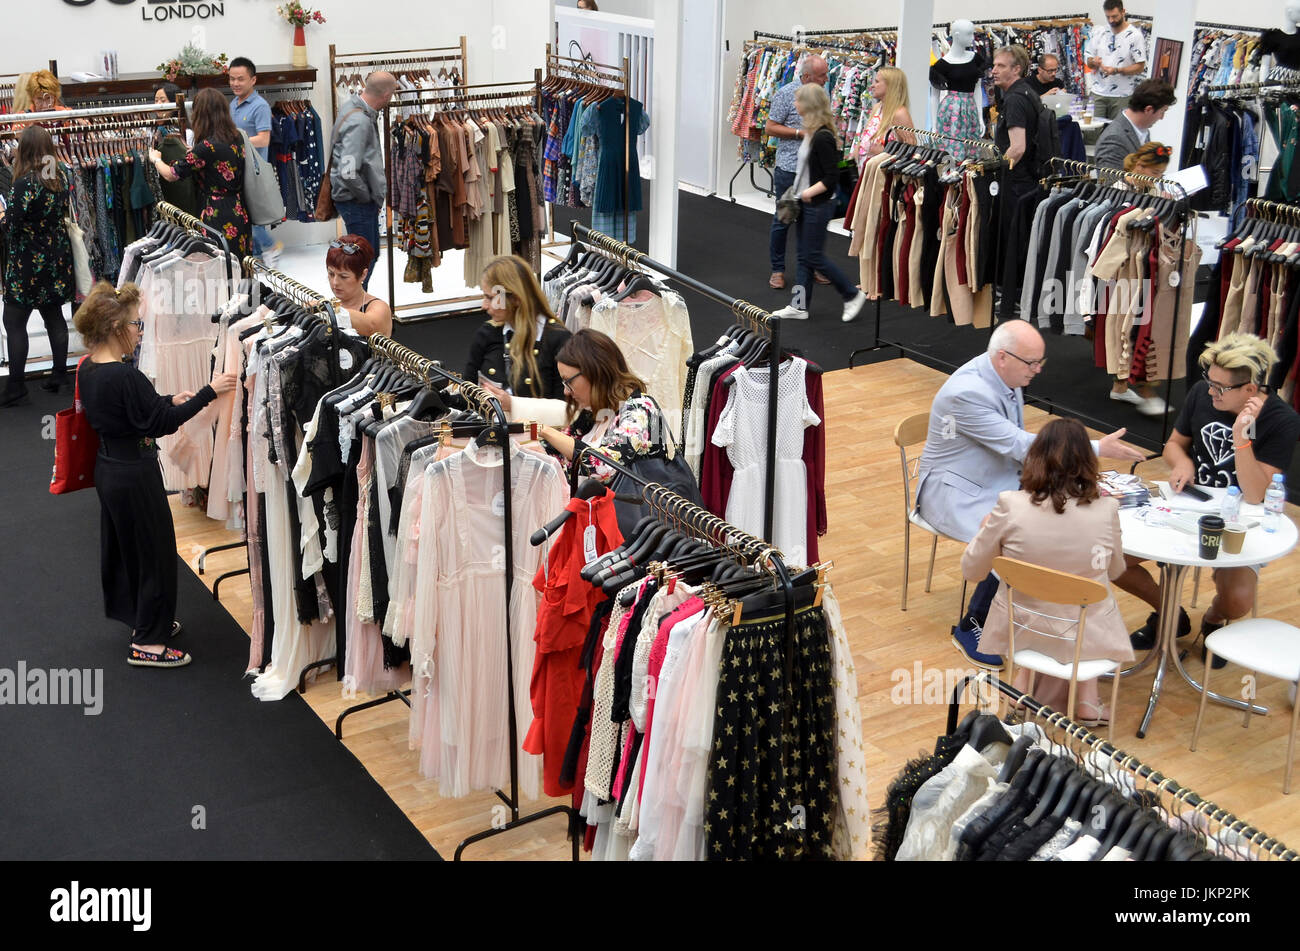 Trade Stands Olympia : Fashion buyers view the trade stands at pure london olympia london